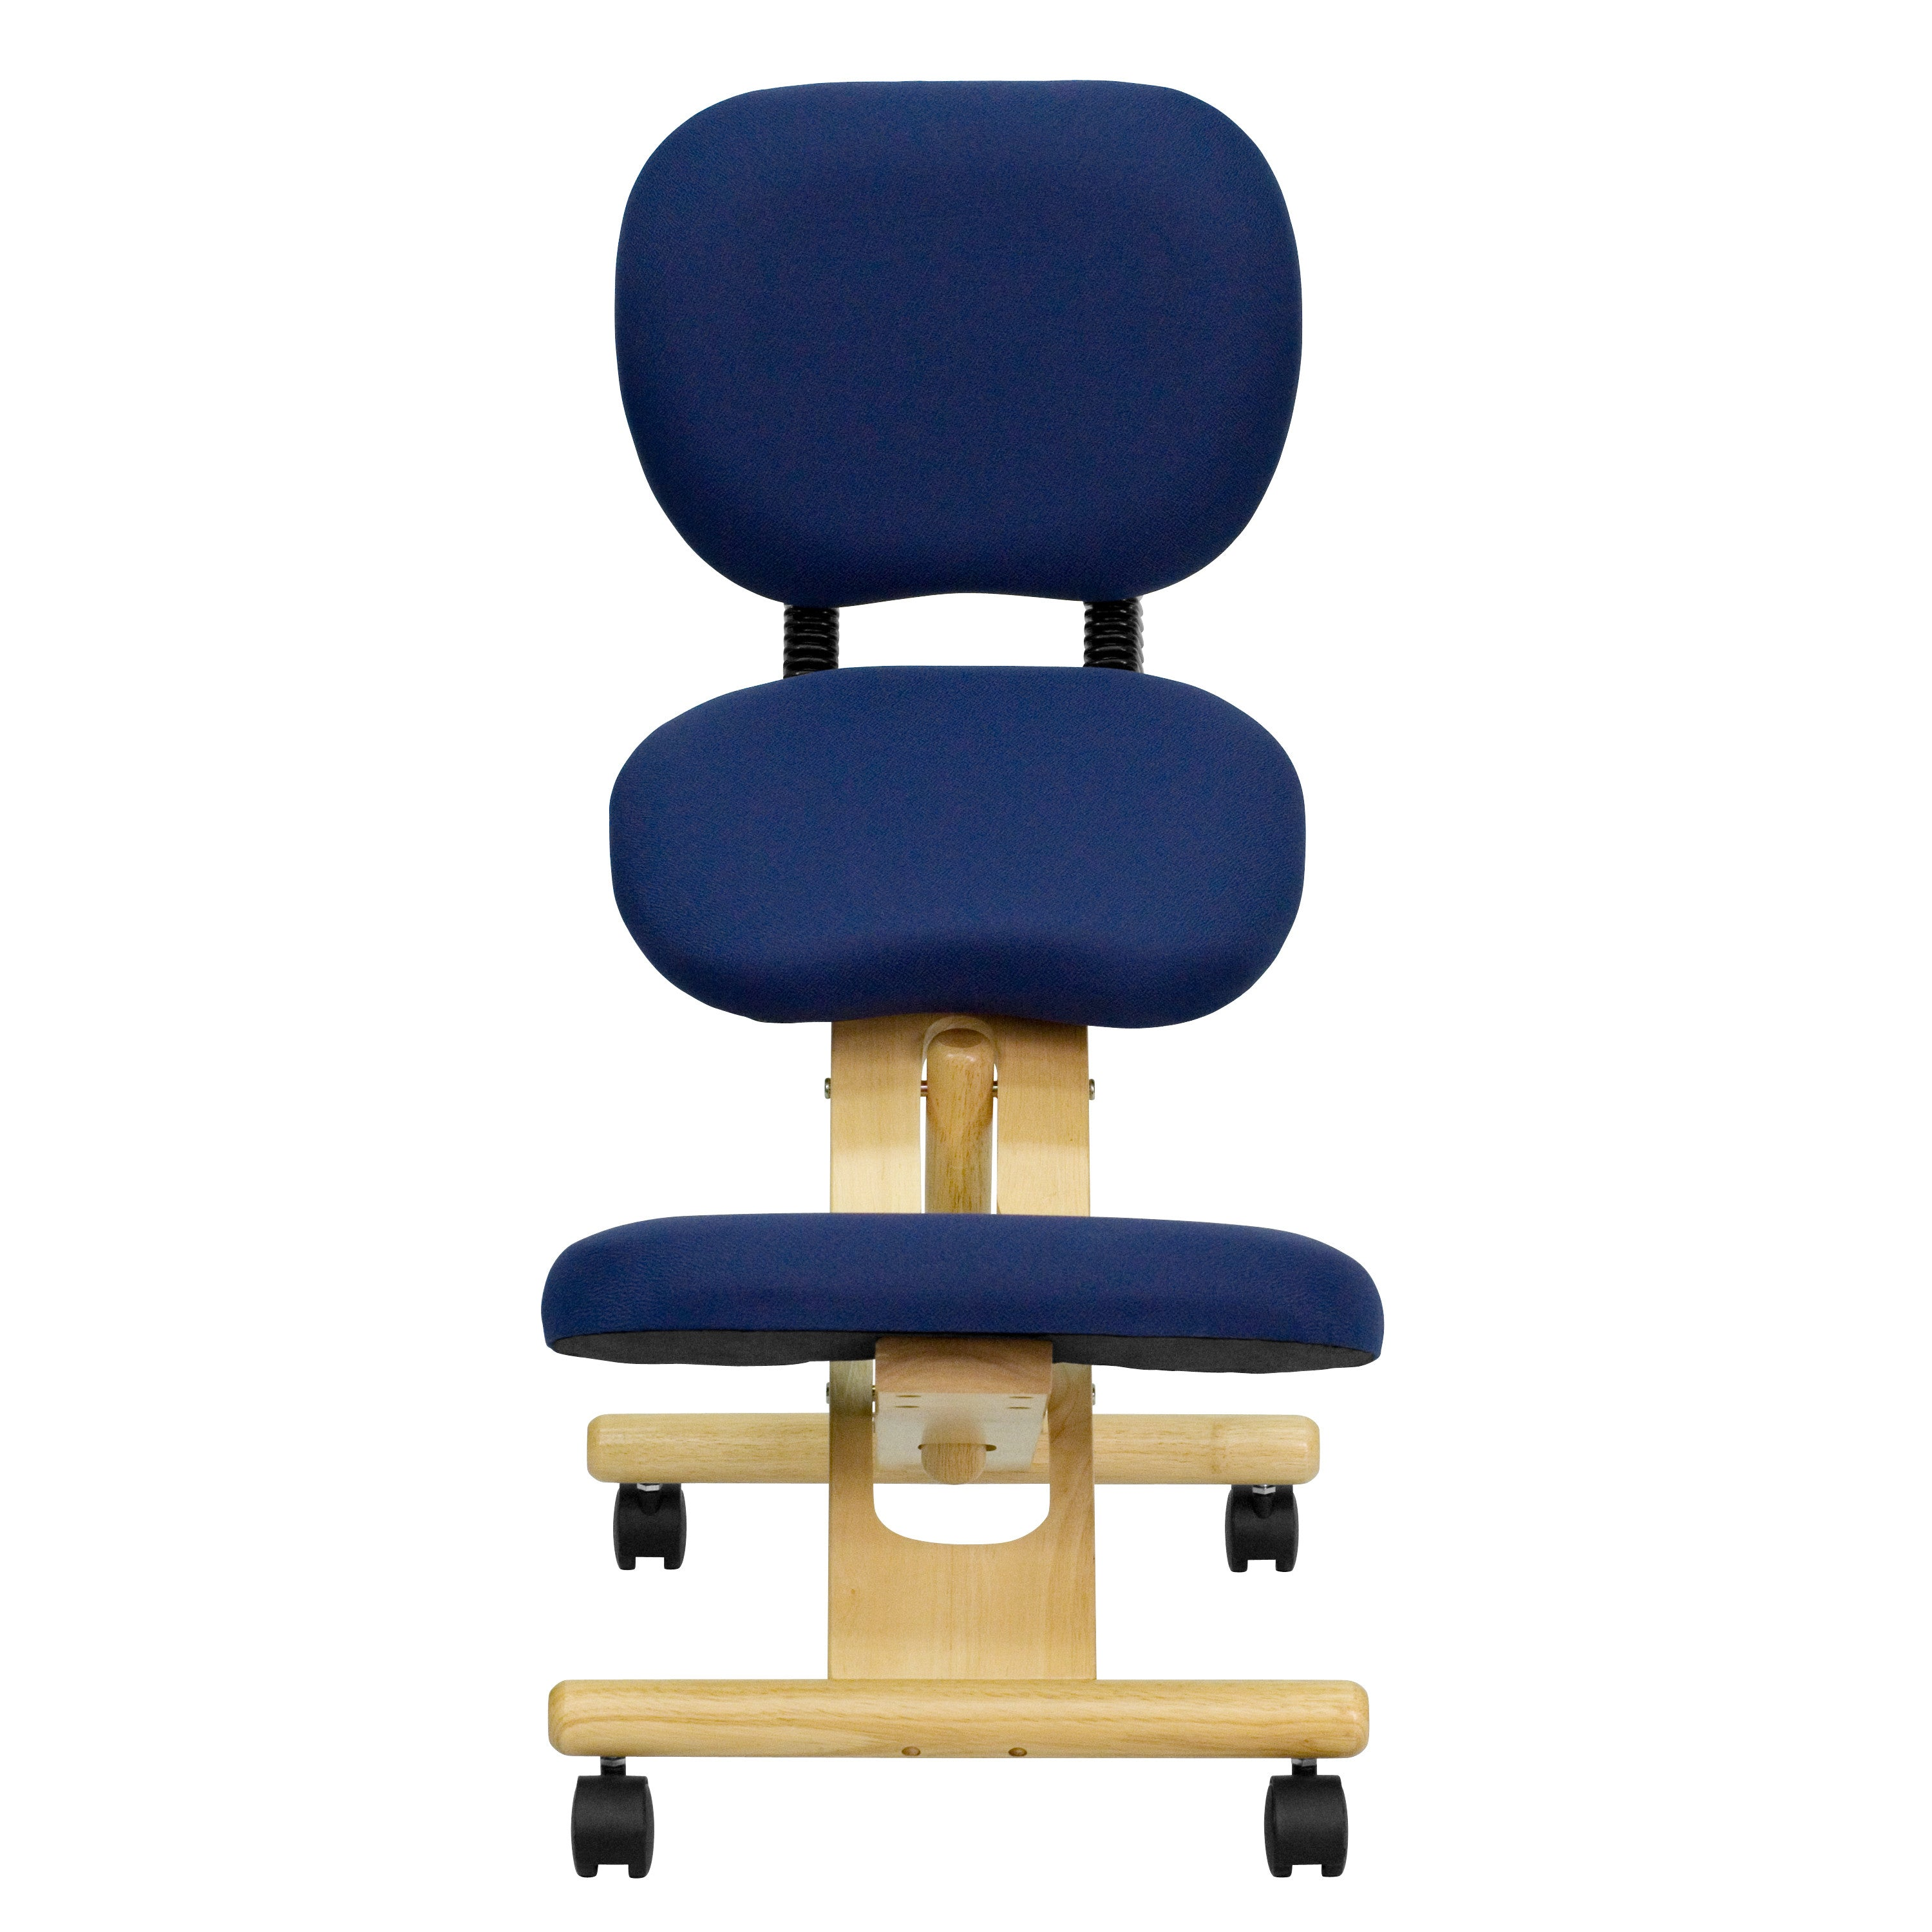 Band posture chair - Mobile Wooden Ergonomic Kneeling Posture Chair With Reclining Back In Navy Blue Fabric